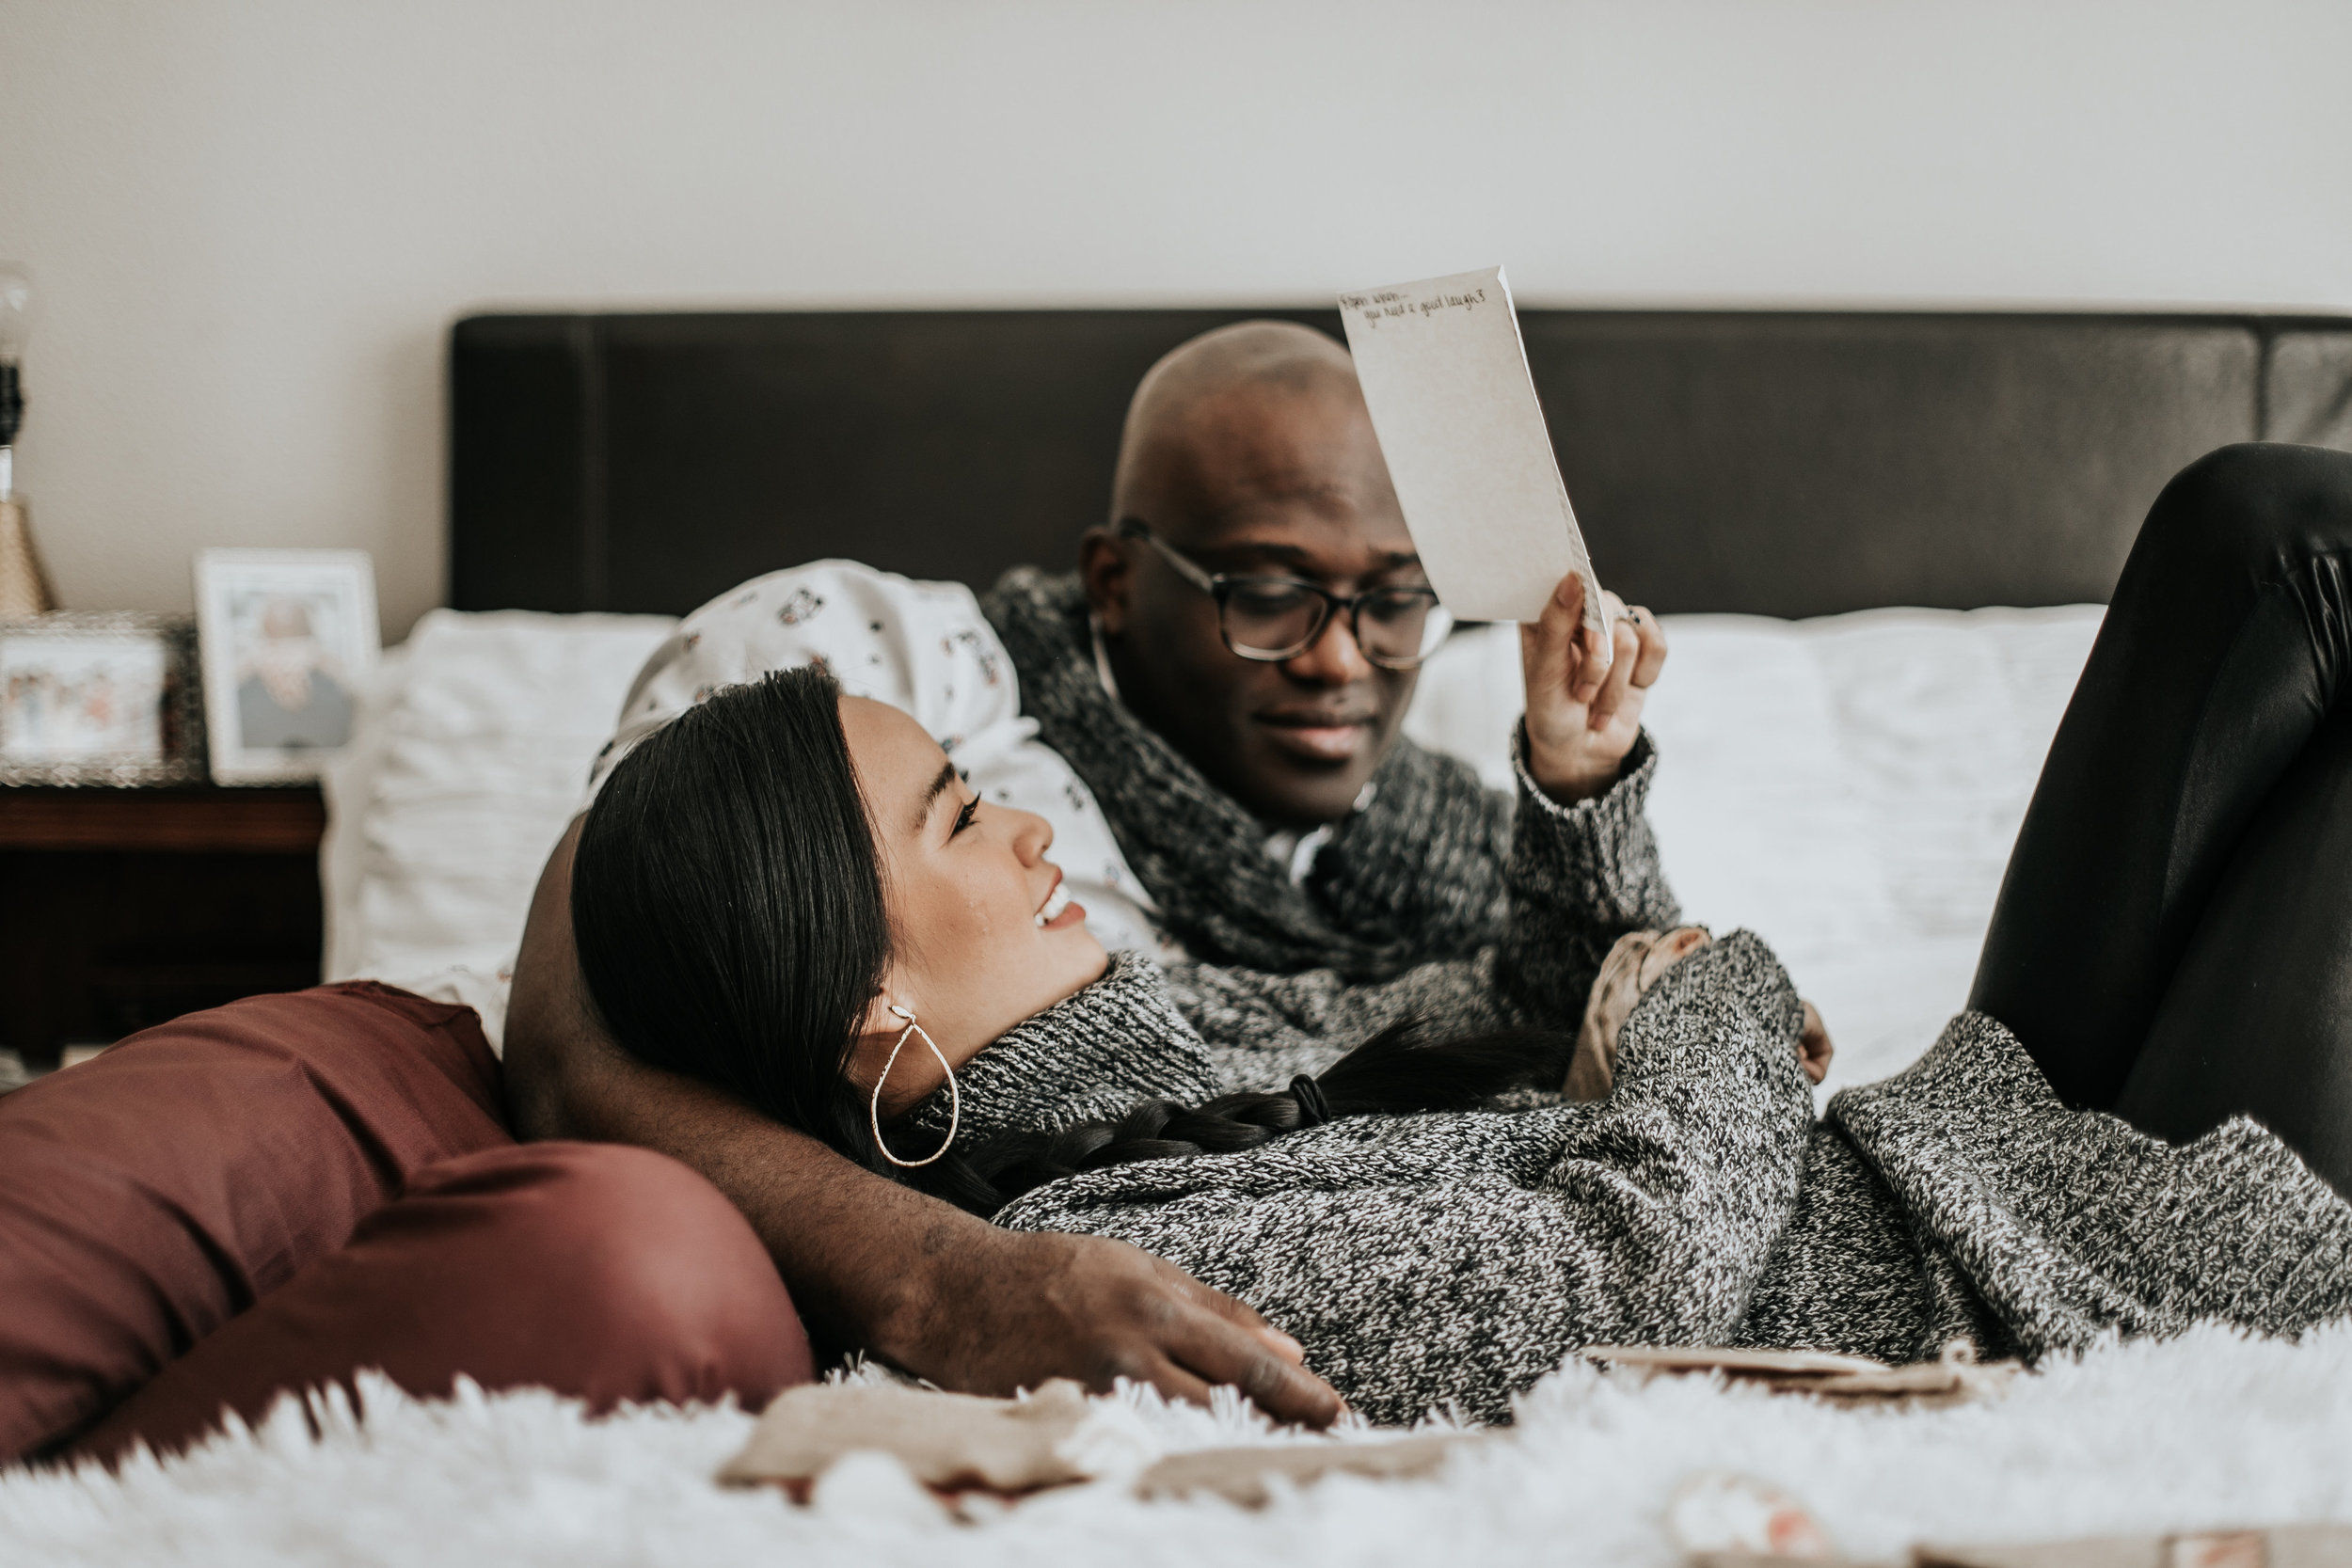 """Nika   Ihedigbo + Emeka Ihedigbo   @diwadoll   @mekk_noir    """"Stay really curious about your spouse, it's not always like that its because I'm in my head about my own expectations and what I want. But remember why you made the decision to marry your spouse in the first place"""" - Nika Ihedigbo"""